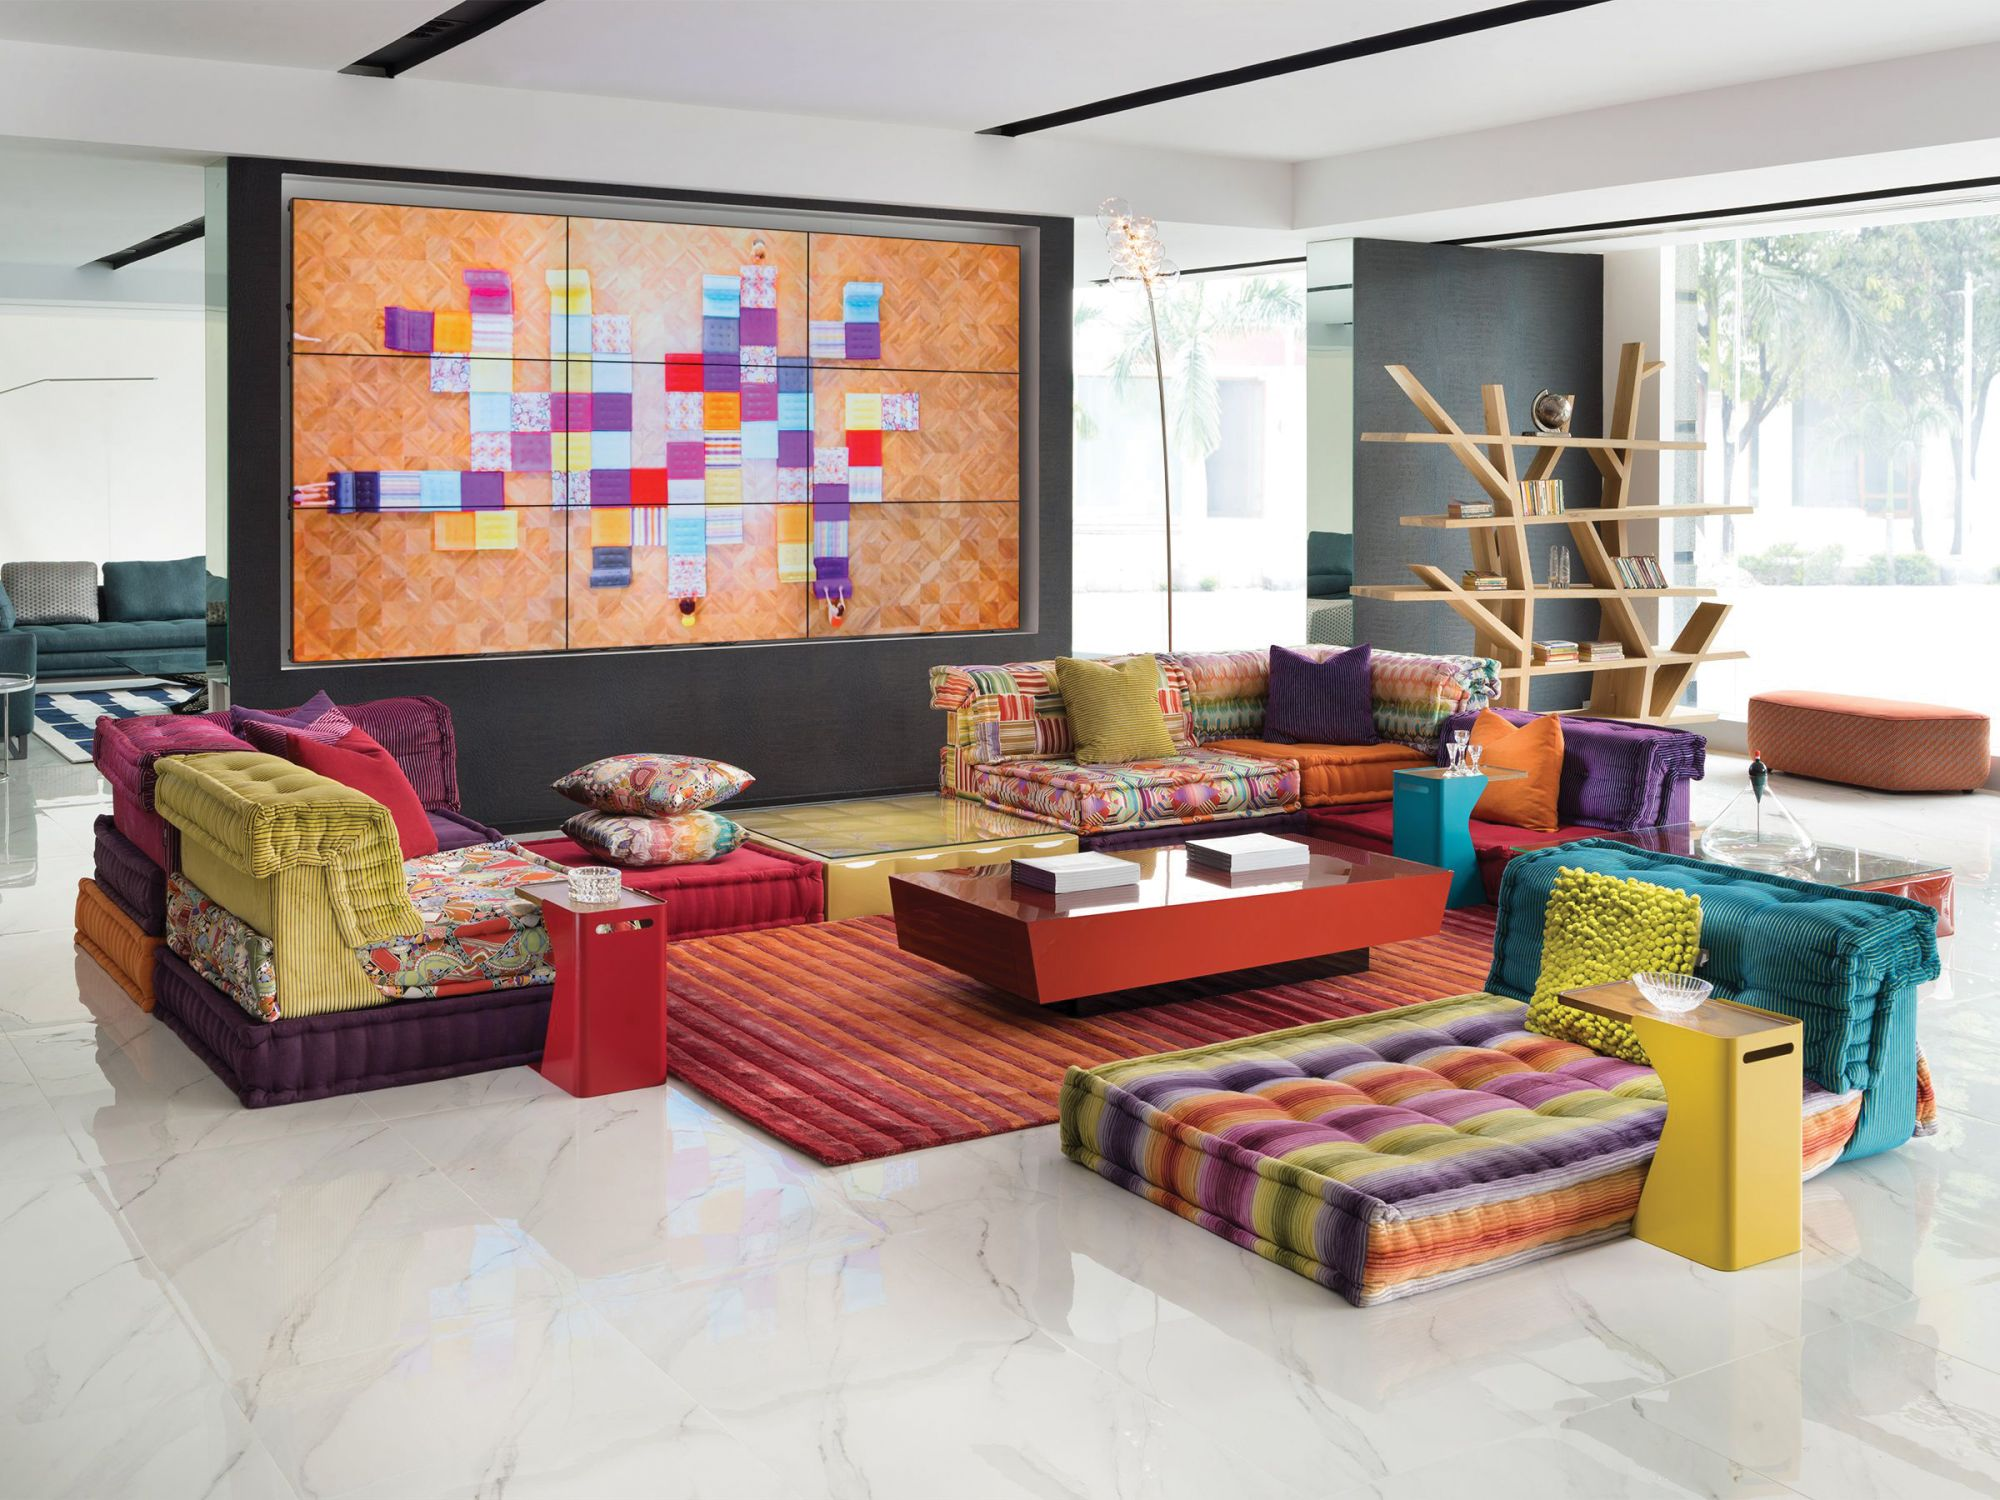 Originally created by the German designer Hans Hopfer in 1971, the colourful and modular Mah Jong sofa adds a sense of playfulness and fun to a sitting room. Available at Roche Bobois.